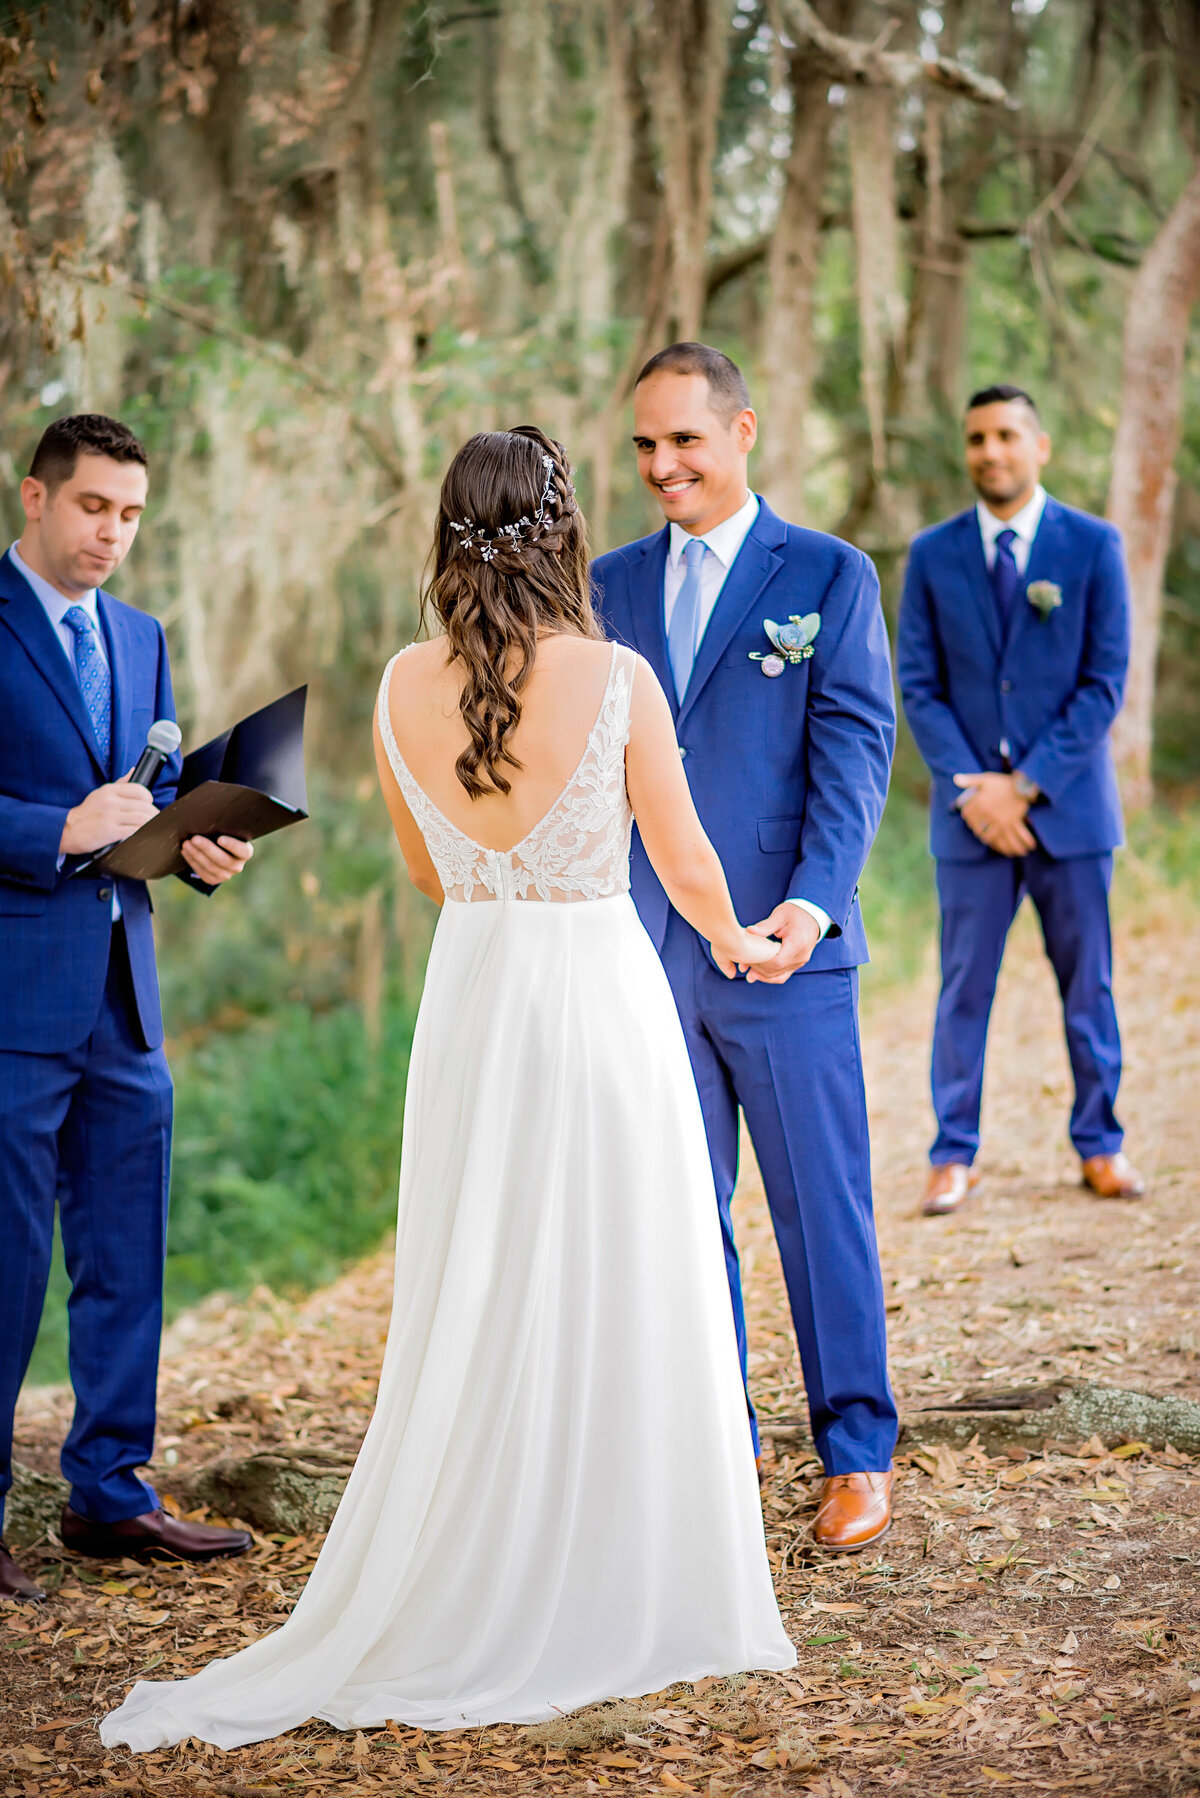 SH-Wedding-Photographerfavorite-30